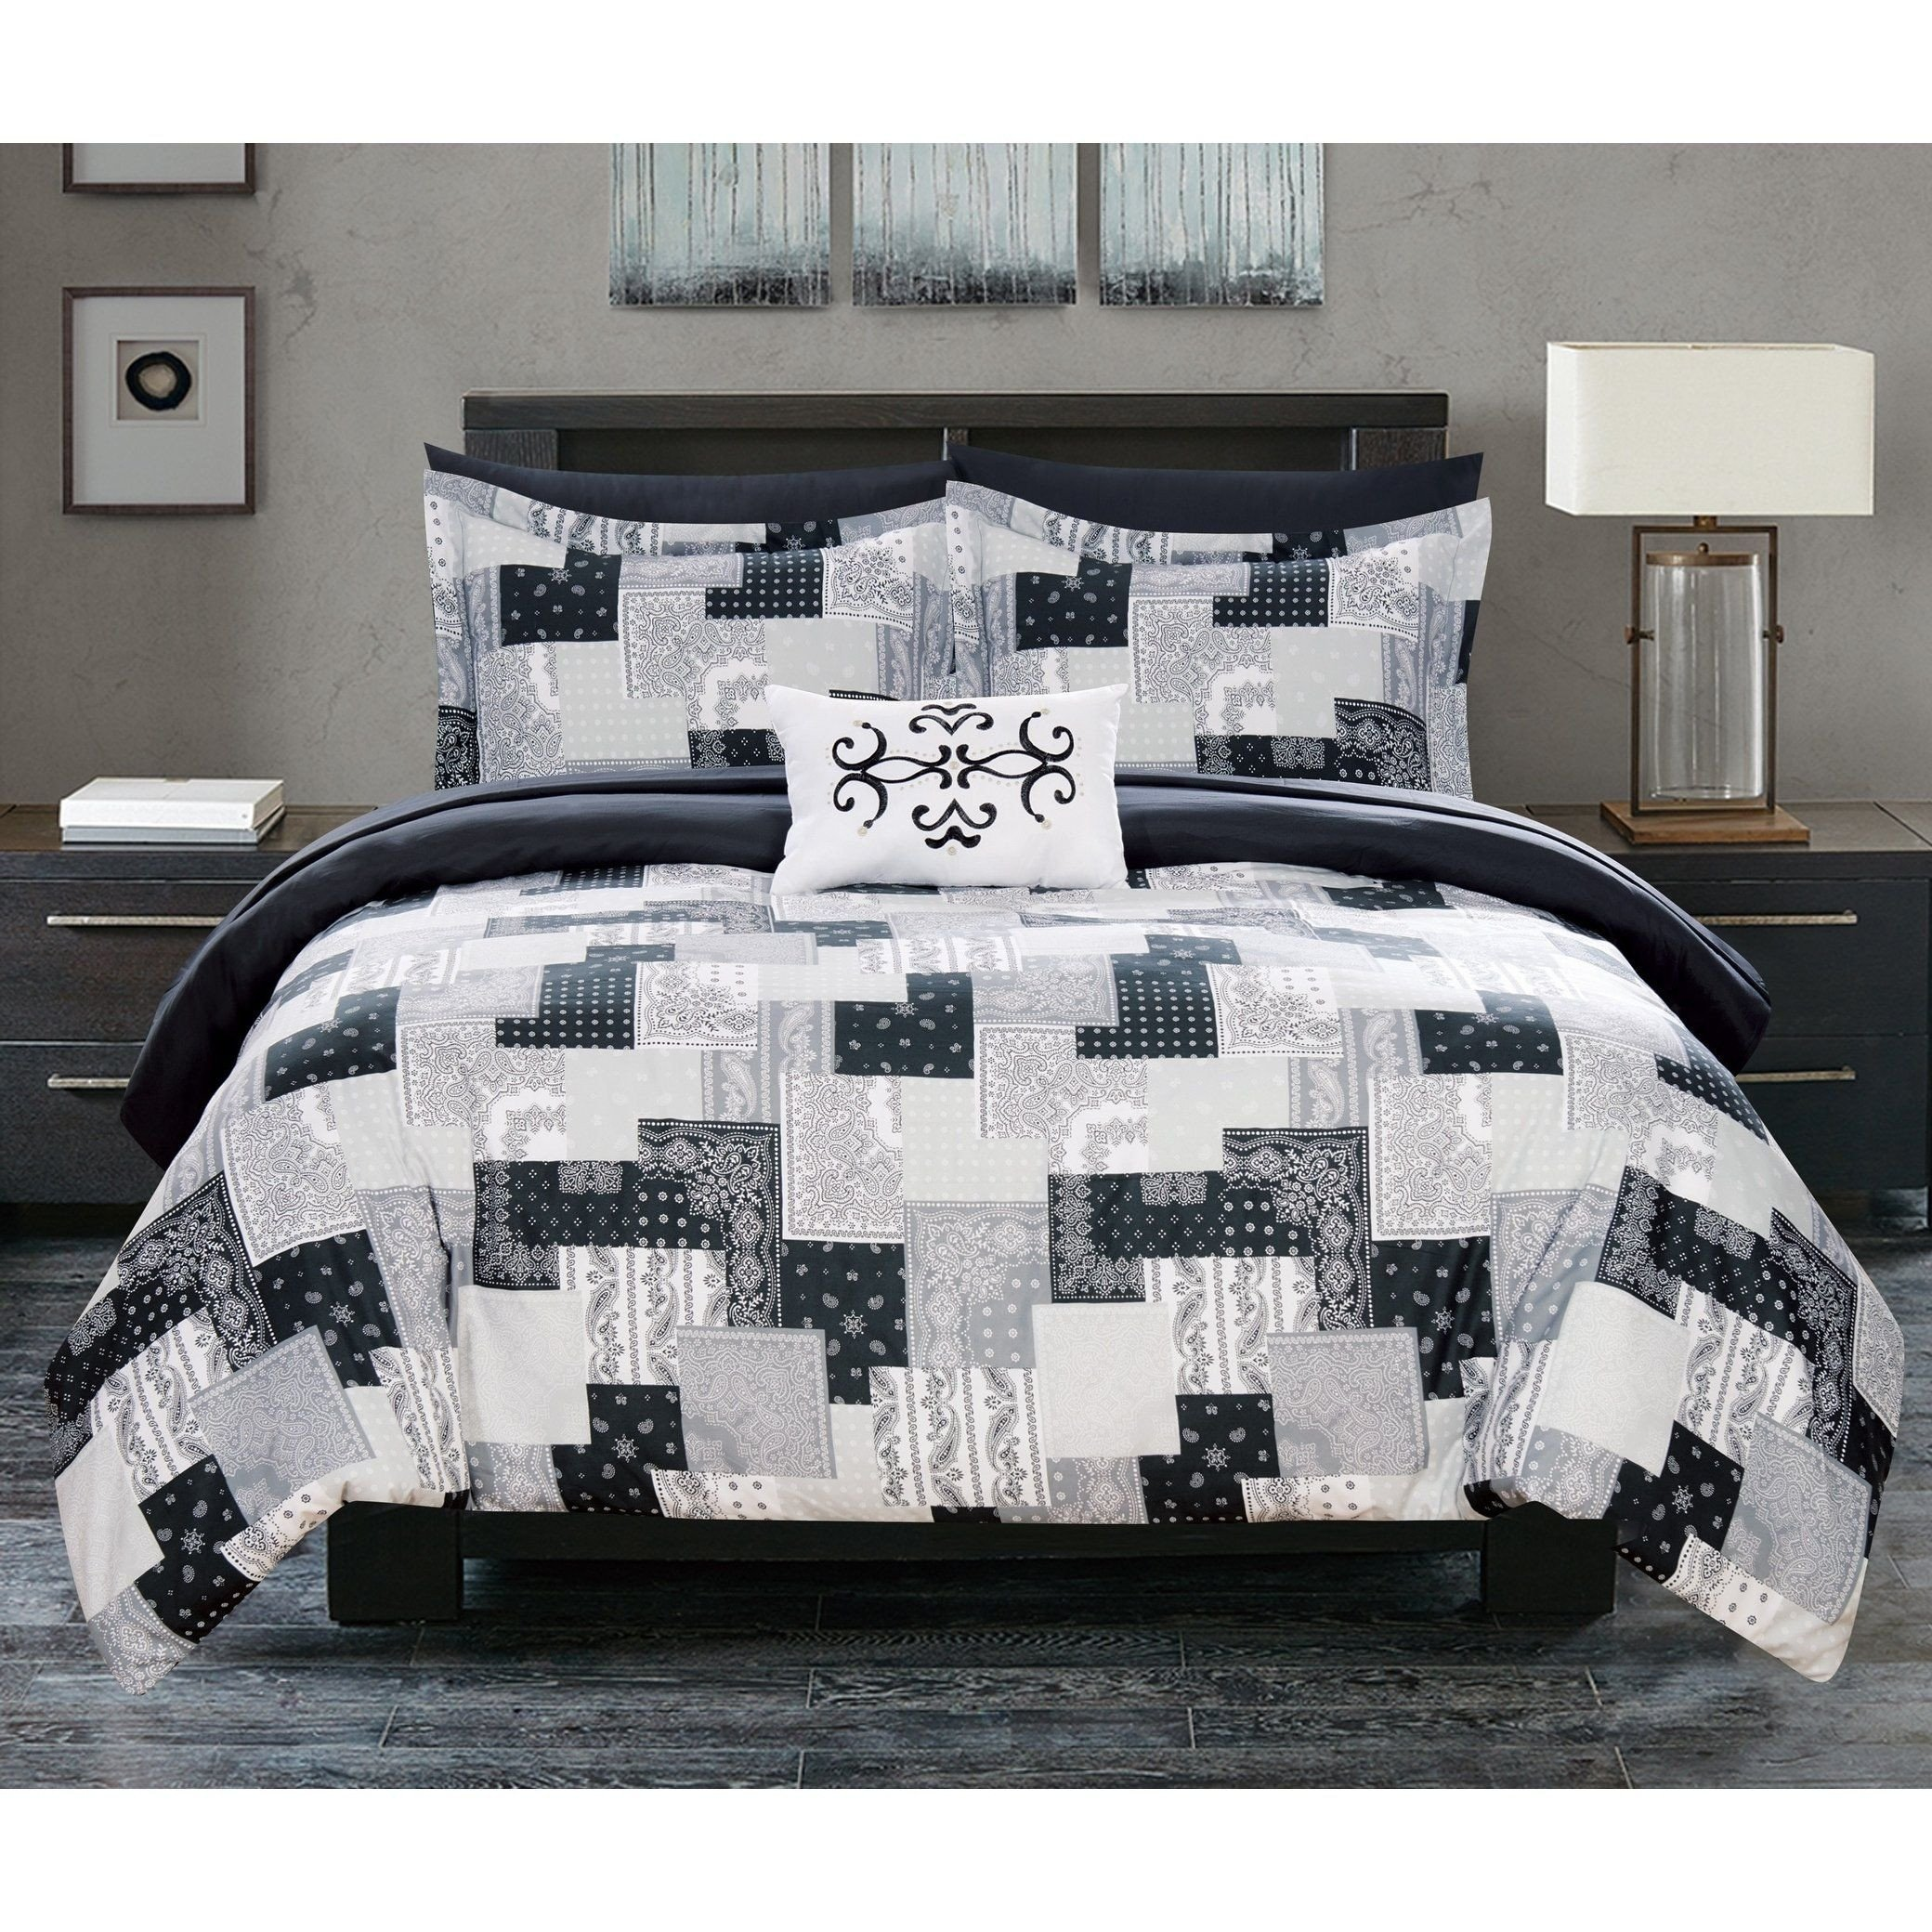 Dallas Cowboy Bedroom Set Awesome Chic Home 8 Piece Reversible forter Set Patchwork Paisley